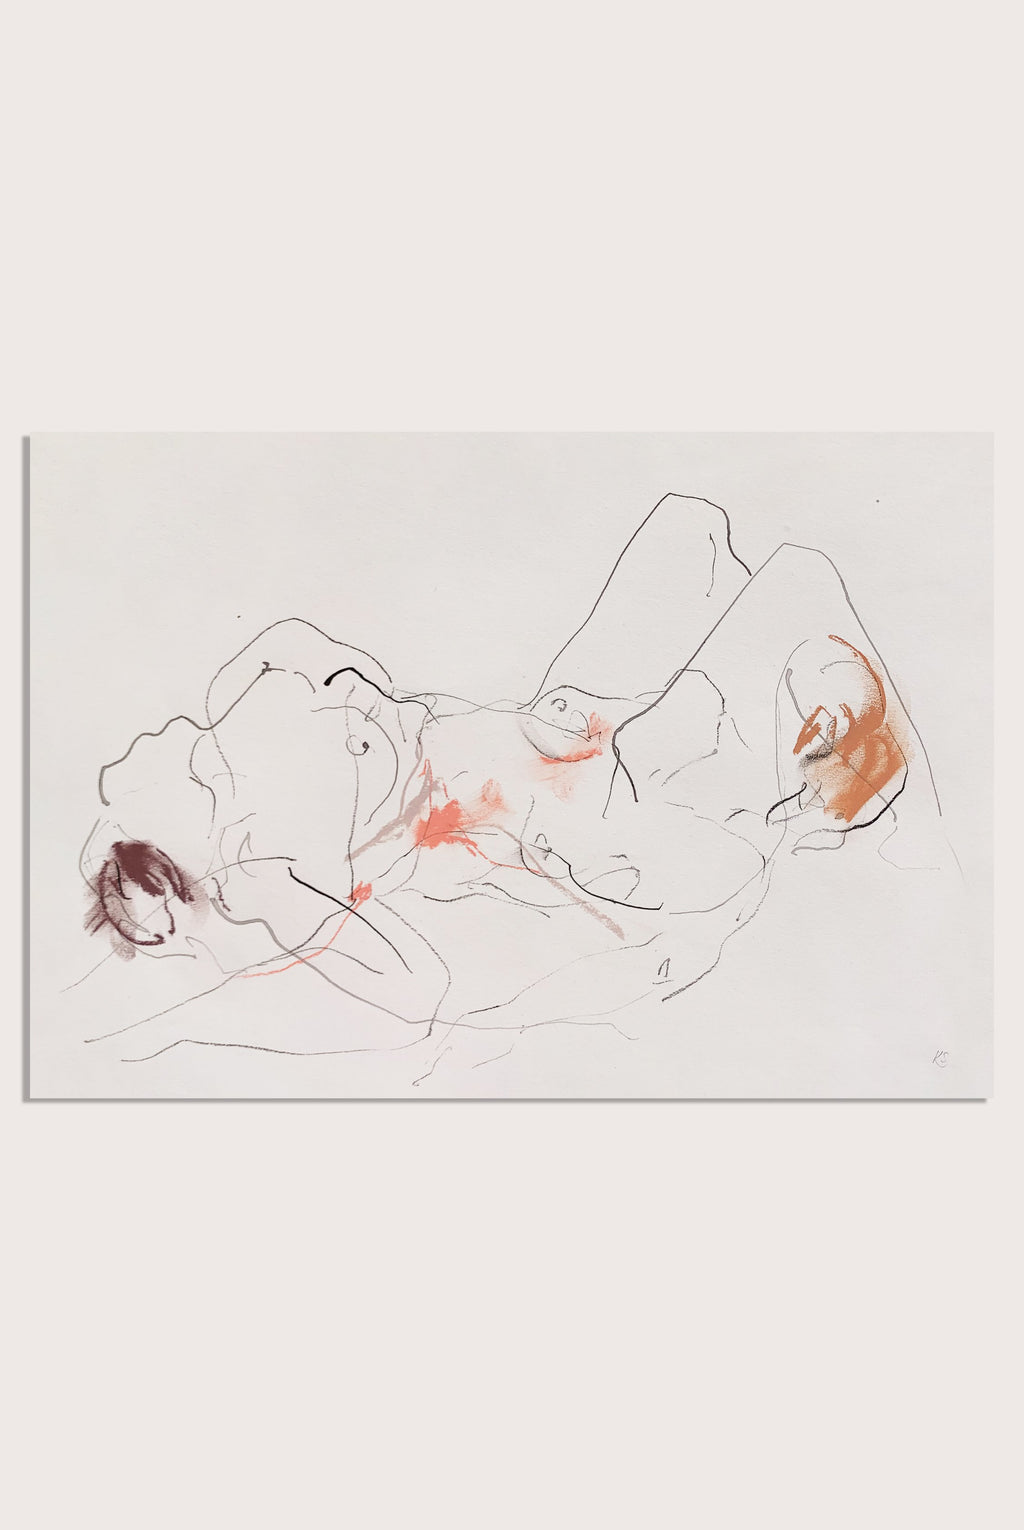 'The Body Remembers - Entwined III', a life drawing by contemporary, woman artist Katherine Sheers